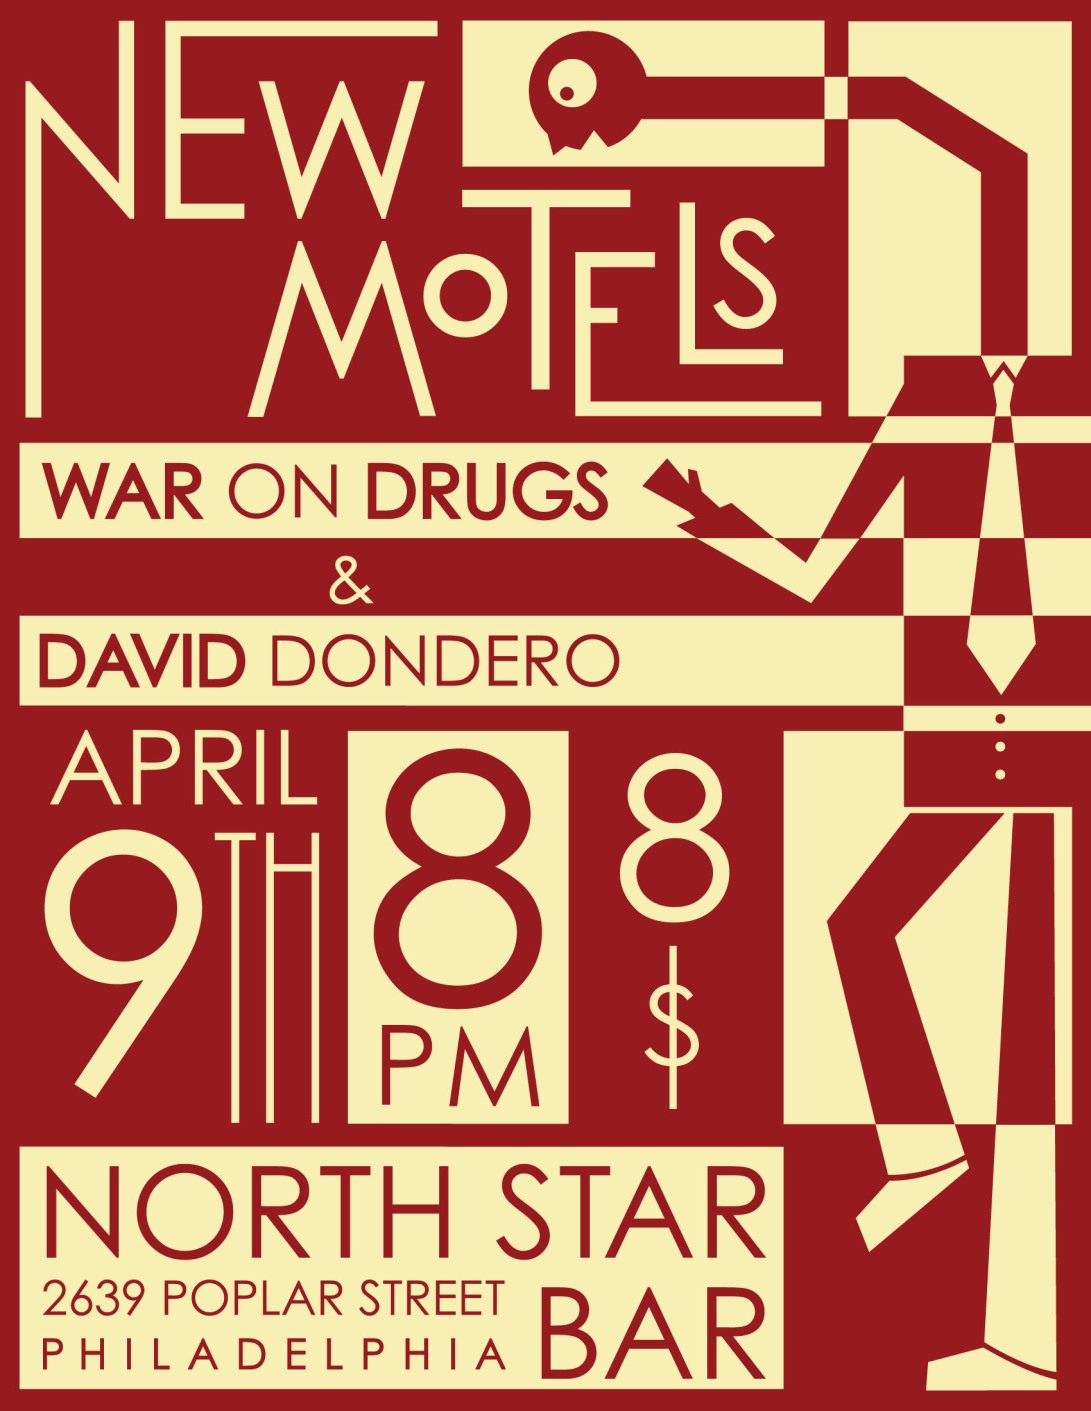 New Motels - show flier